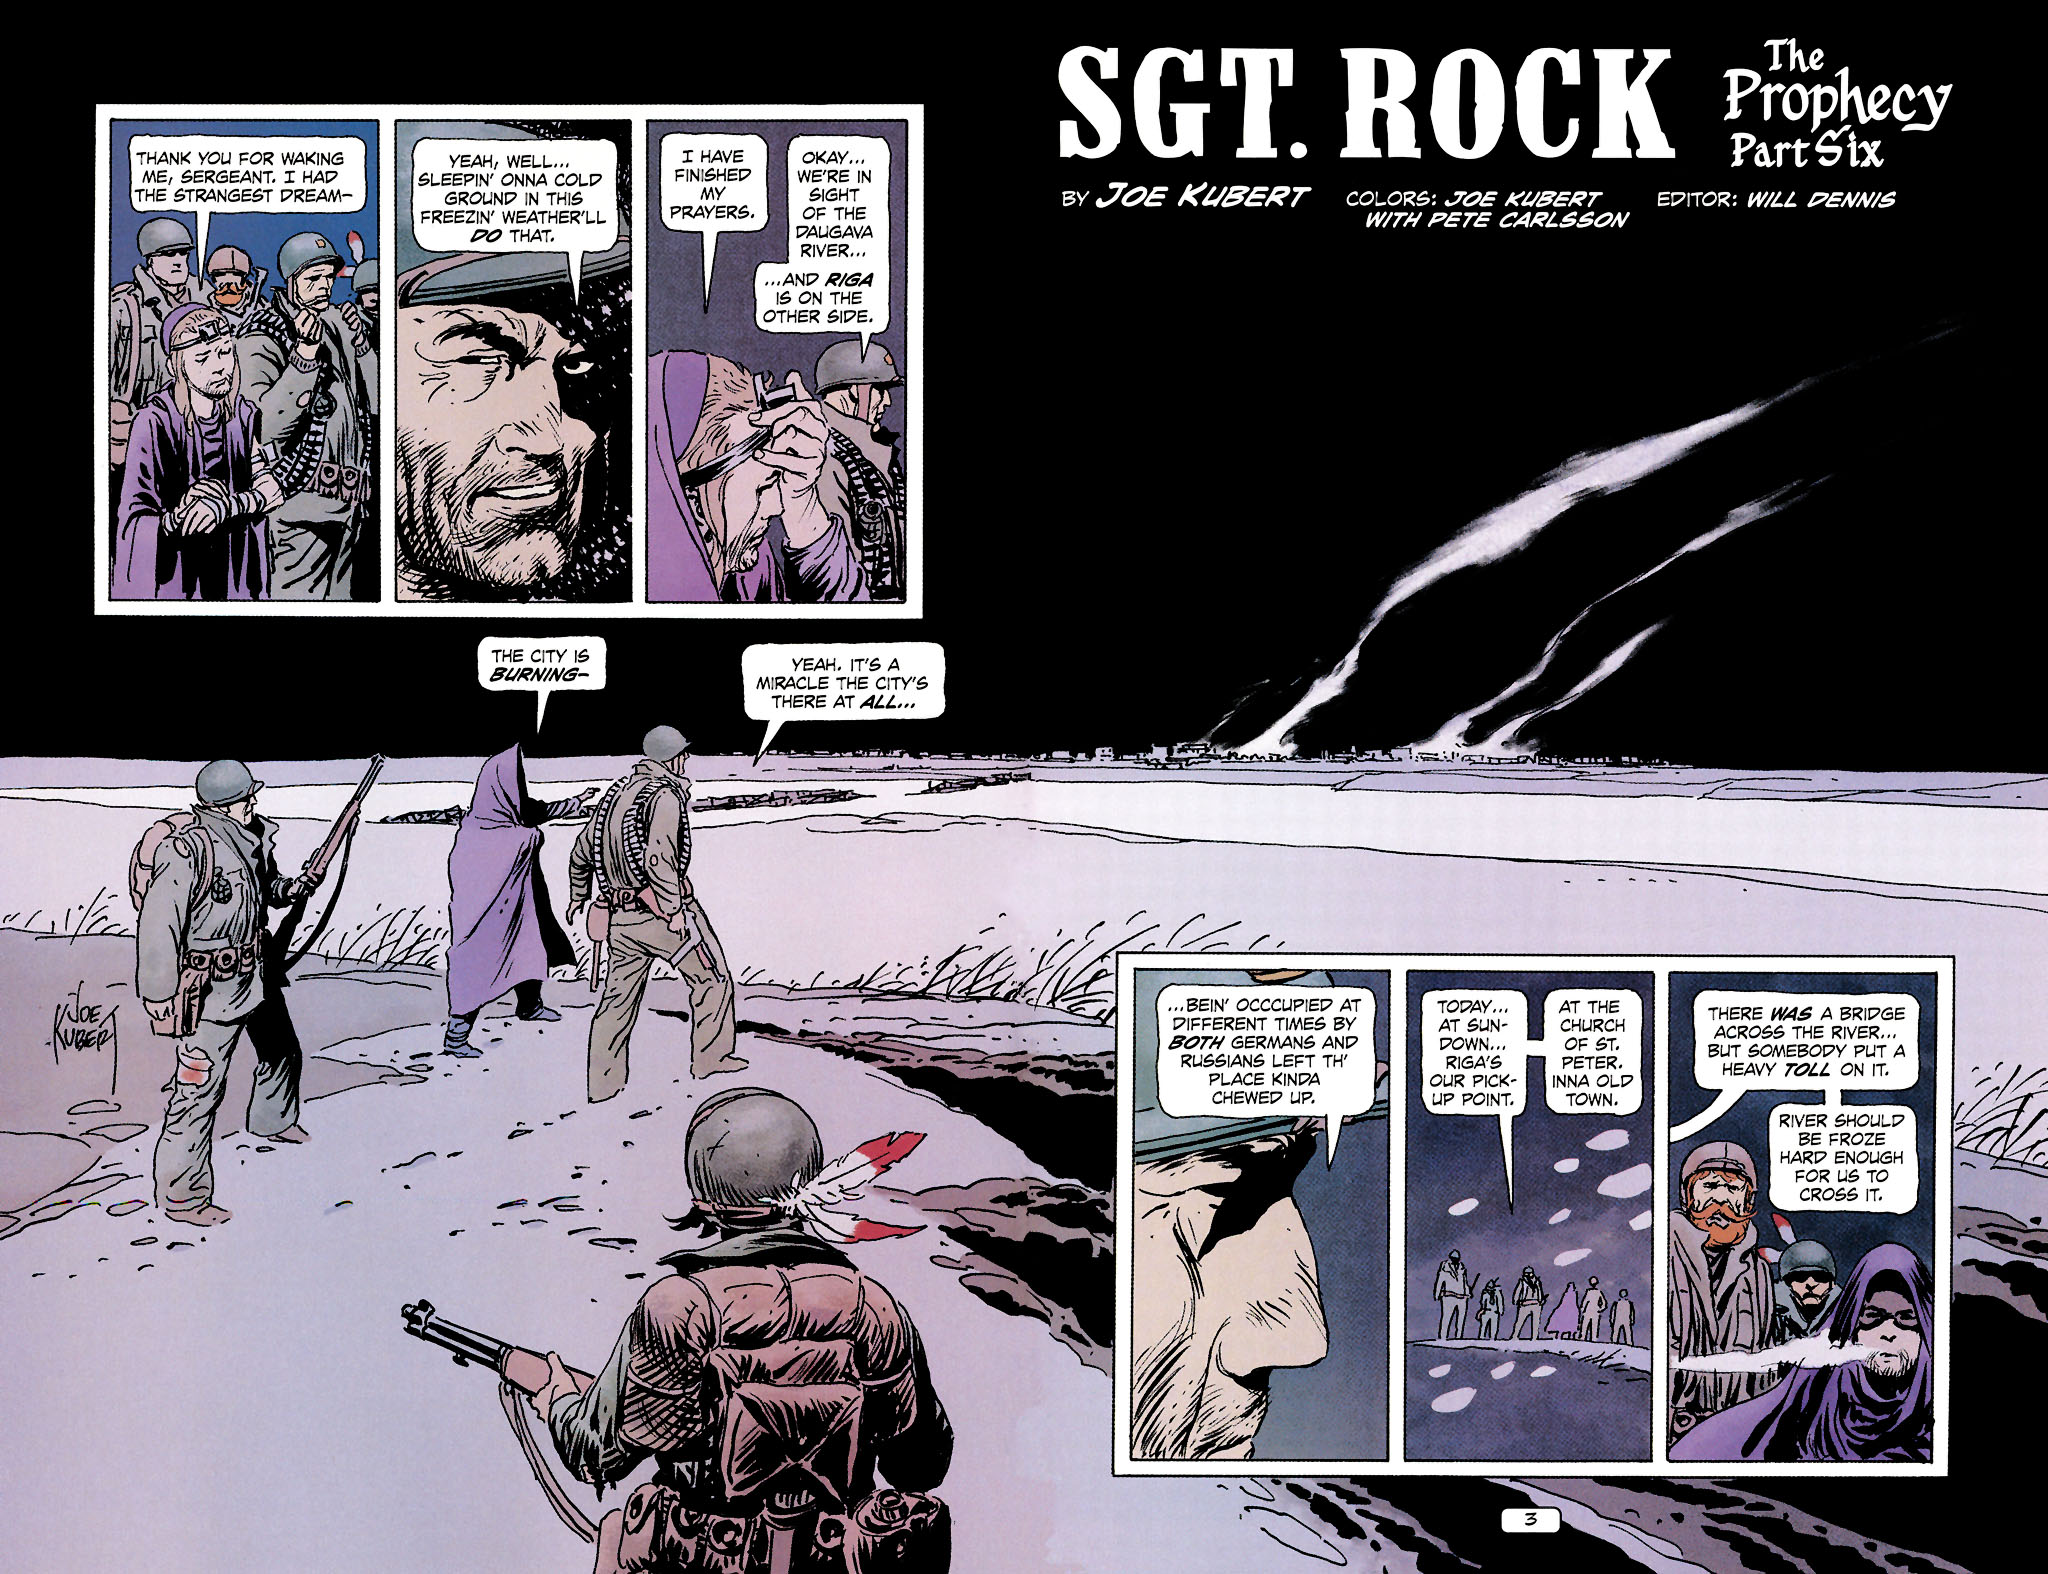 Read online Sgt. Rock: The Prophecy comic -  Issue #6 - 3